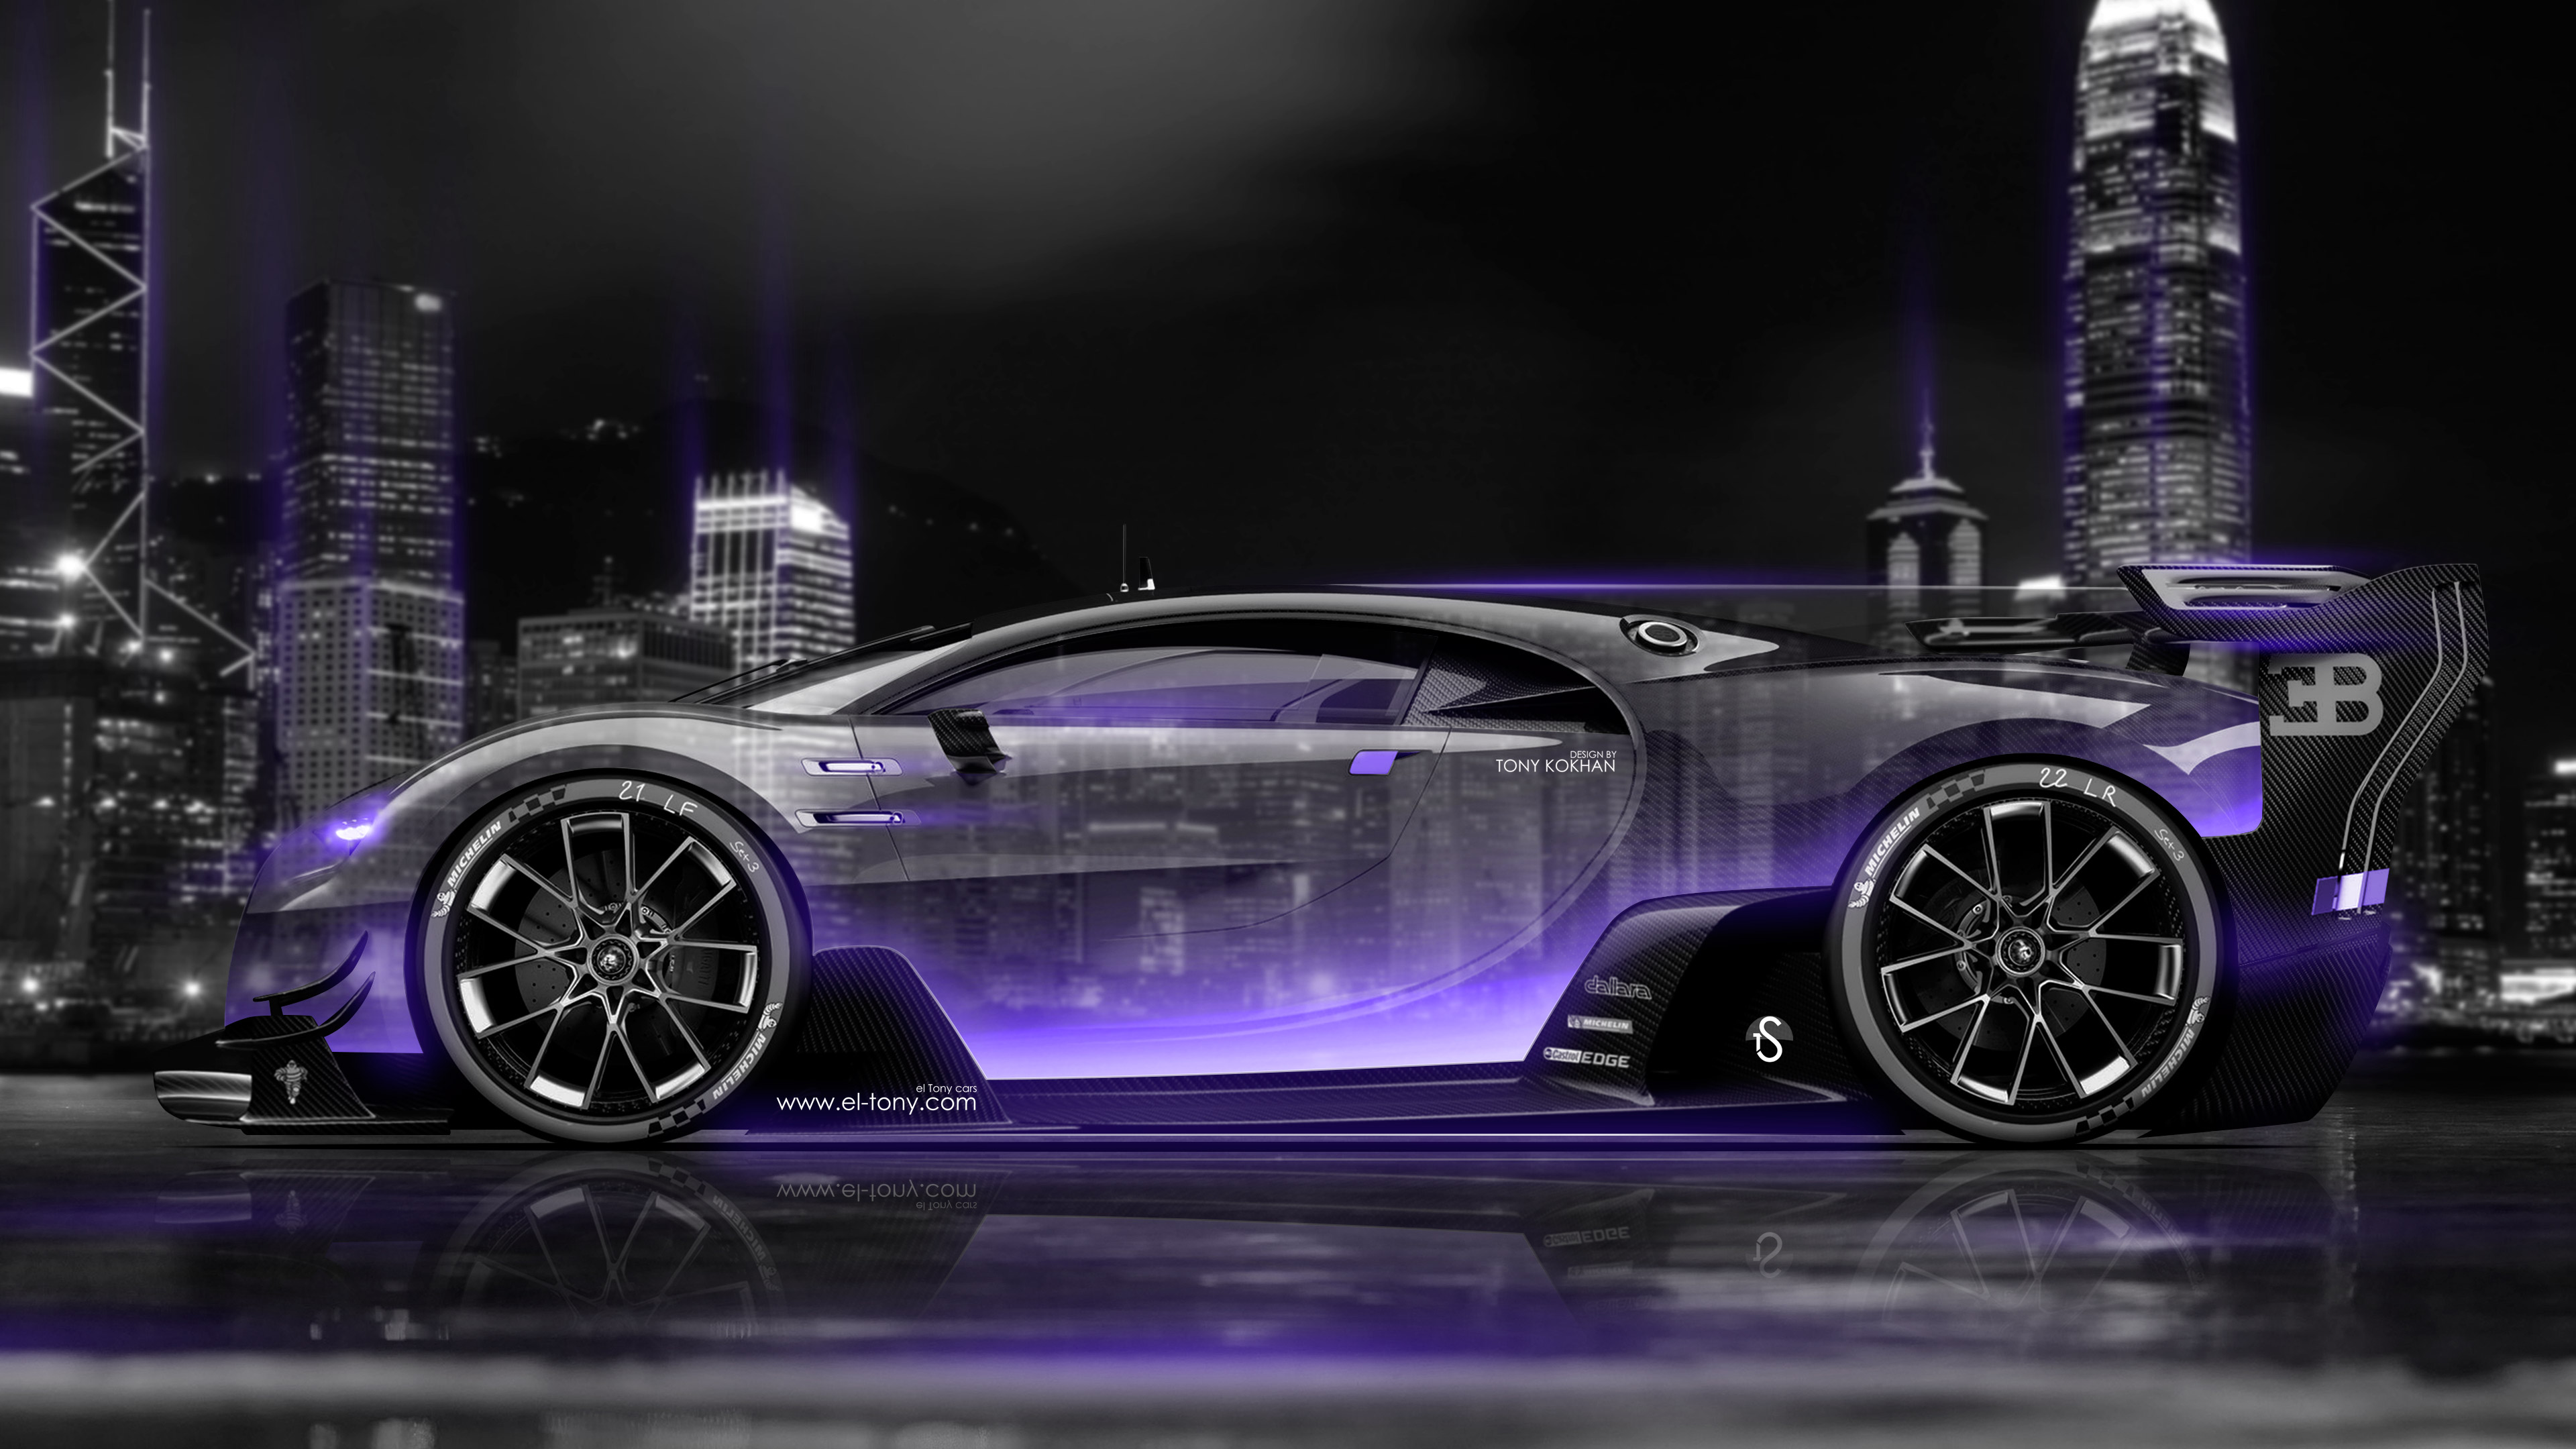 ... Bugatti Vision Gran Turismo Side Crystal City Night Car 2016 Wallpapers  4K